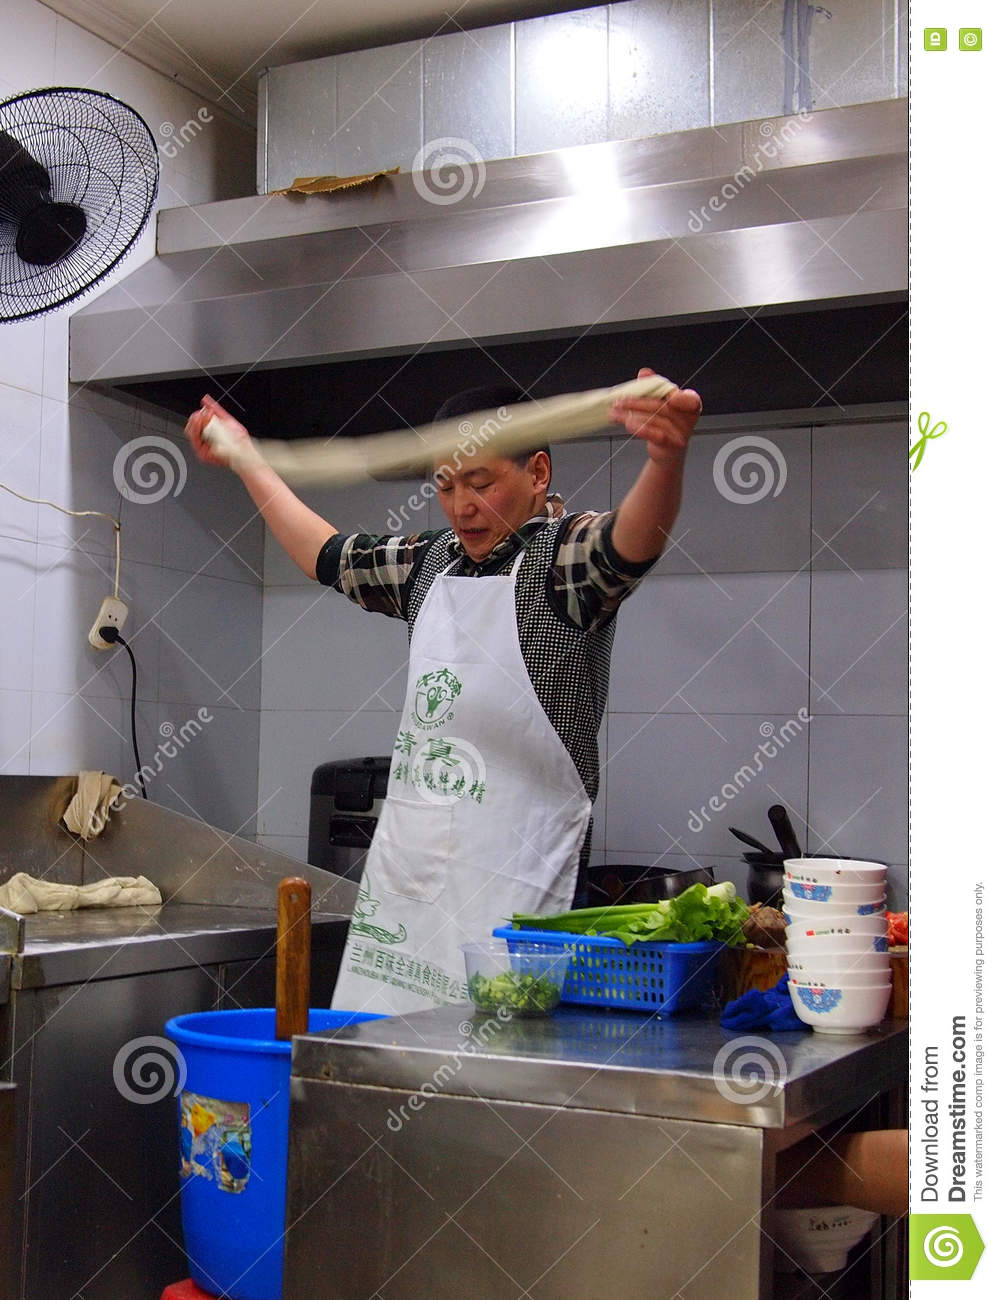 Hand Pulled Noodles In Chinese Restaurant Kitchen Editorial Stock ...